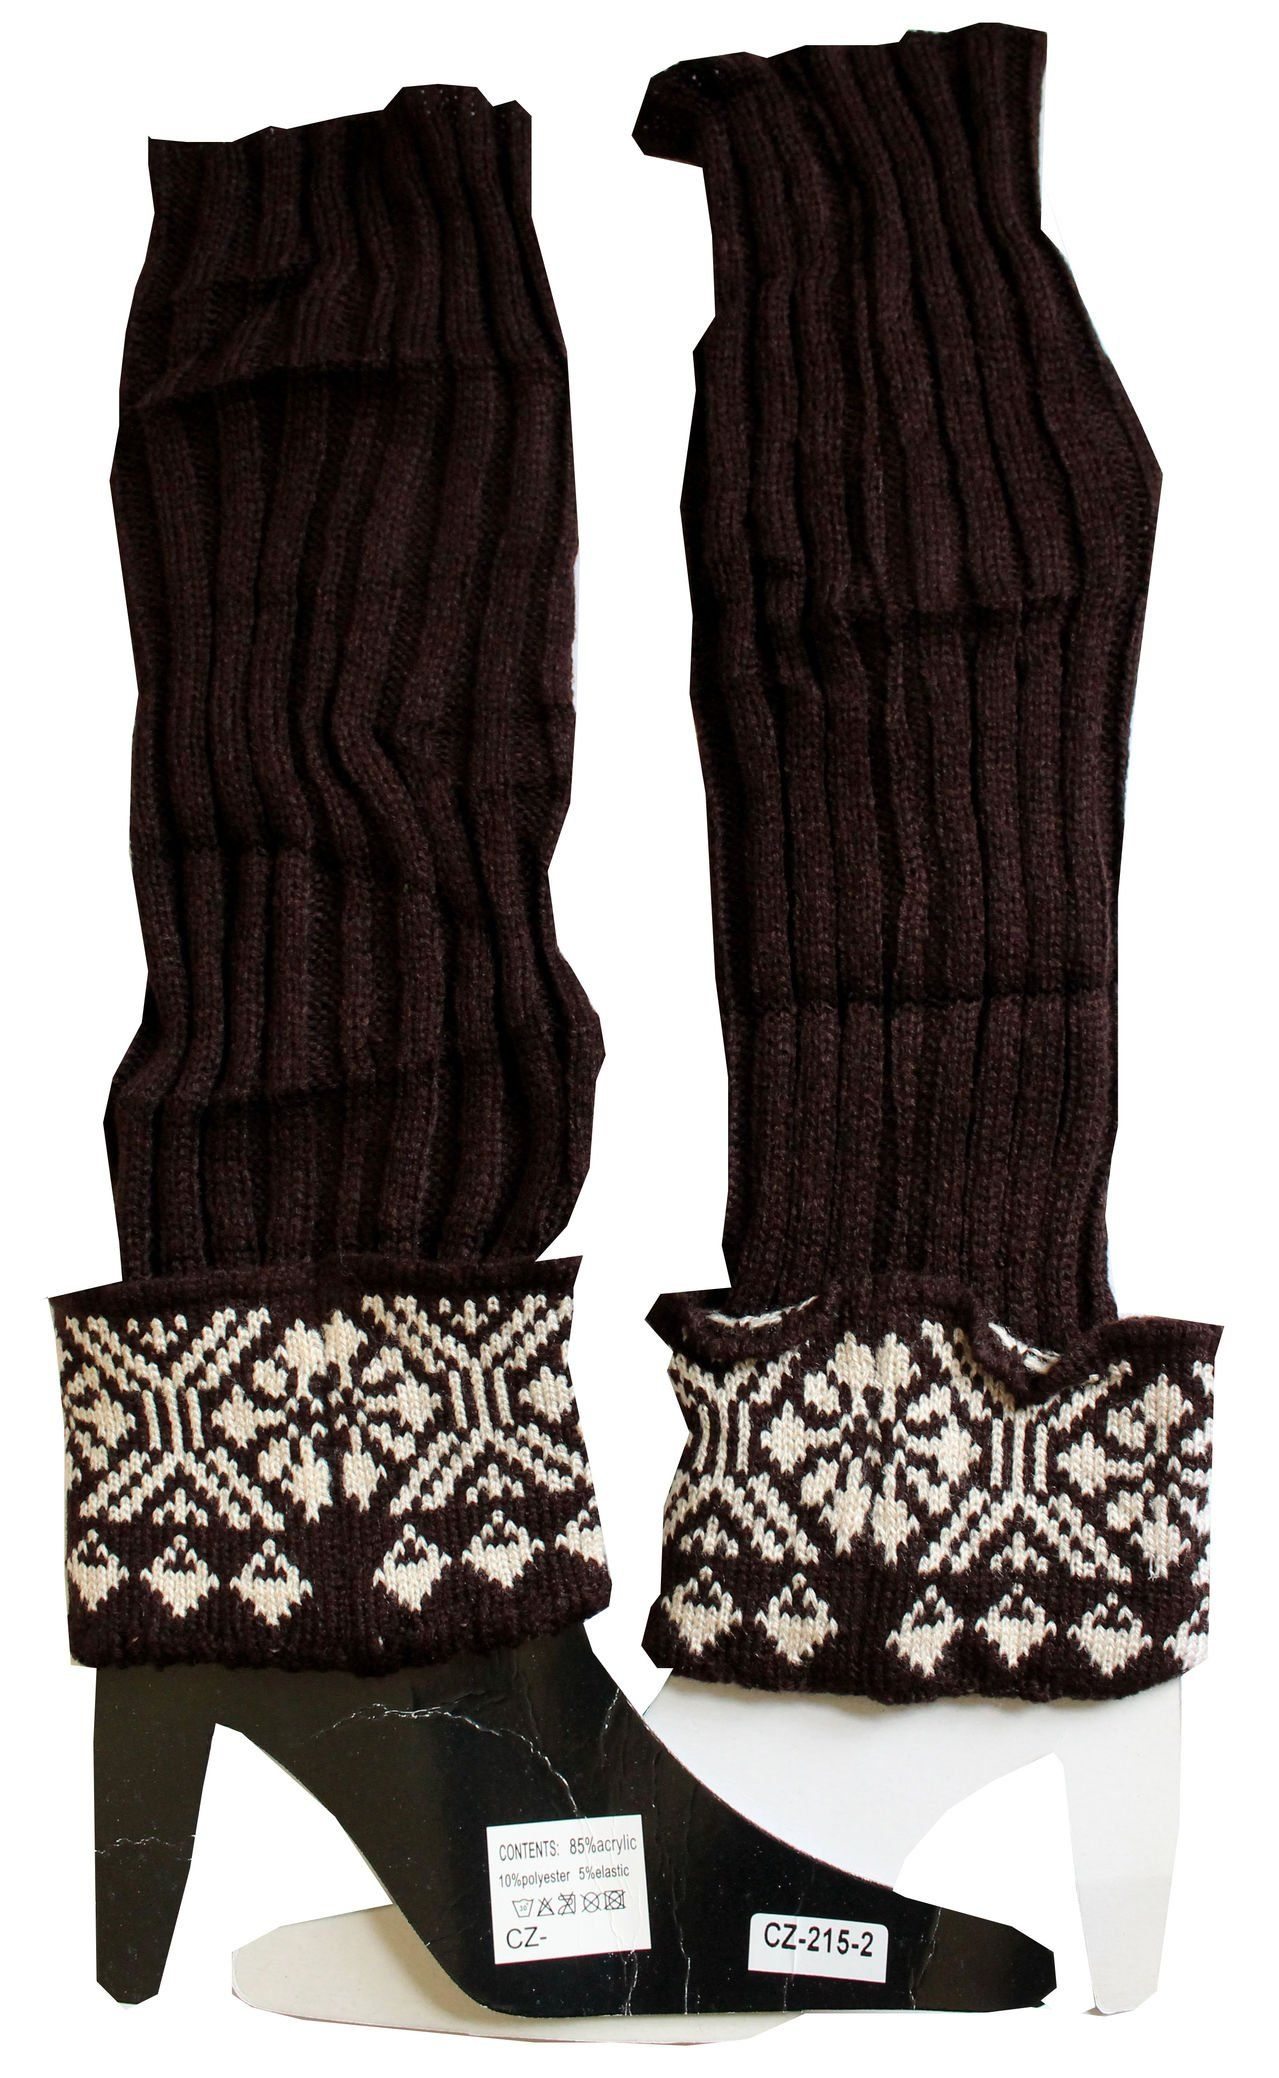 "Snowflake Women Winter Crochet Knit Leg Warmers Boot Socks Brown. Fashion leg warmers with beautiful snowflake print. Size : 16"" long. Approximately 5"" Circumference. One Size. Elastic. Material : 85% acrylic, 15% polyester, 5% elastic. Great to match with skirts, shorts, skinny jeans. Condition : 100% New. Hand wash. Line dry."